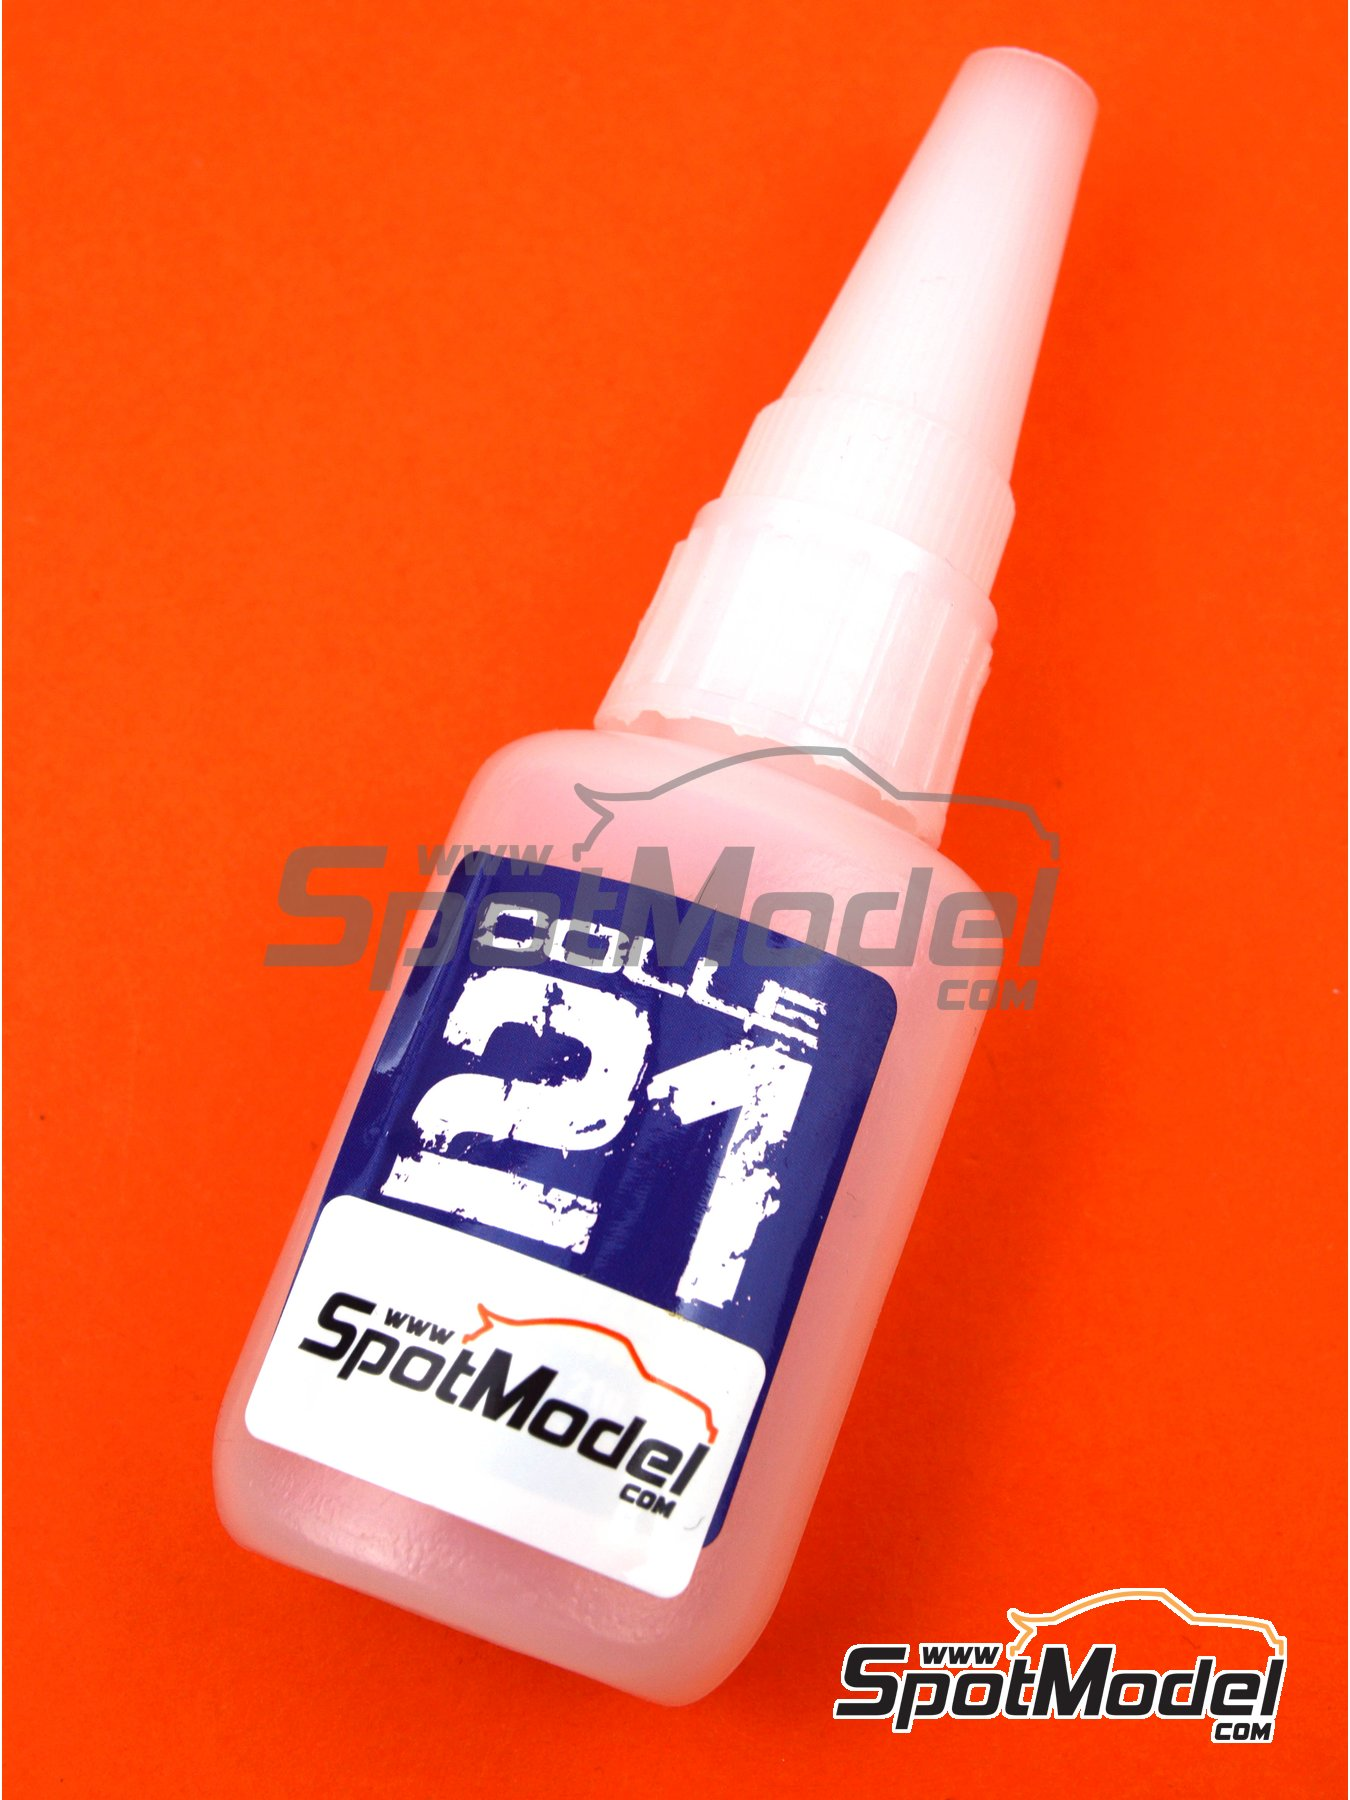 Colle 21 | Glue manufactured by Colle 21 (ref. 0001) image